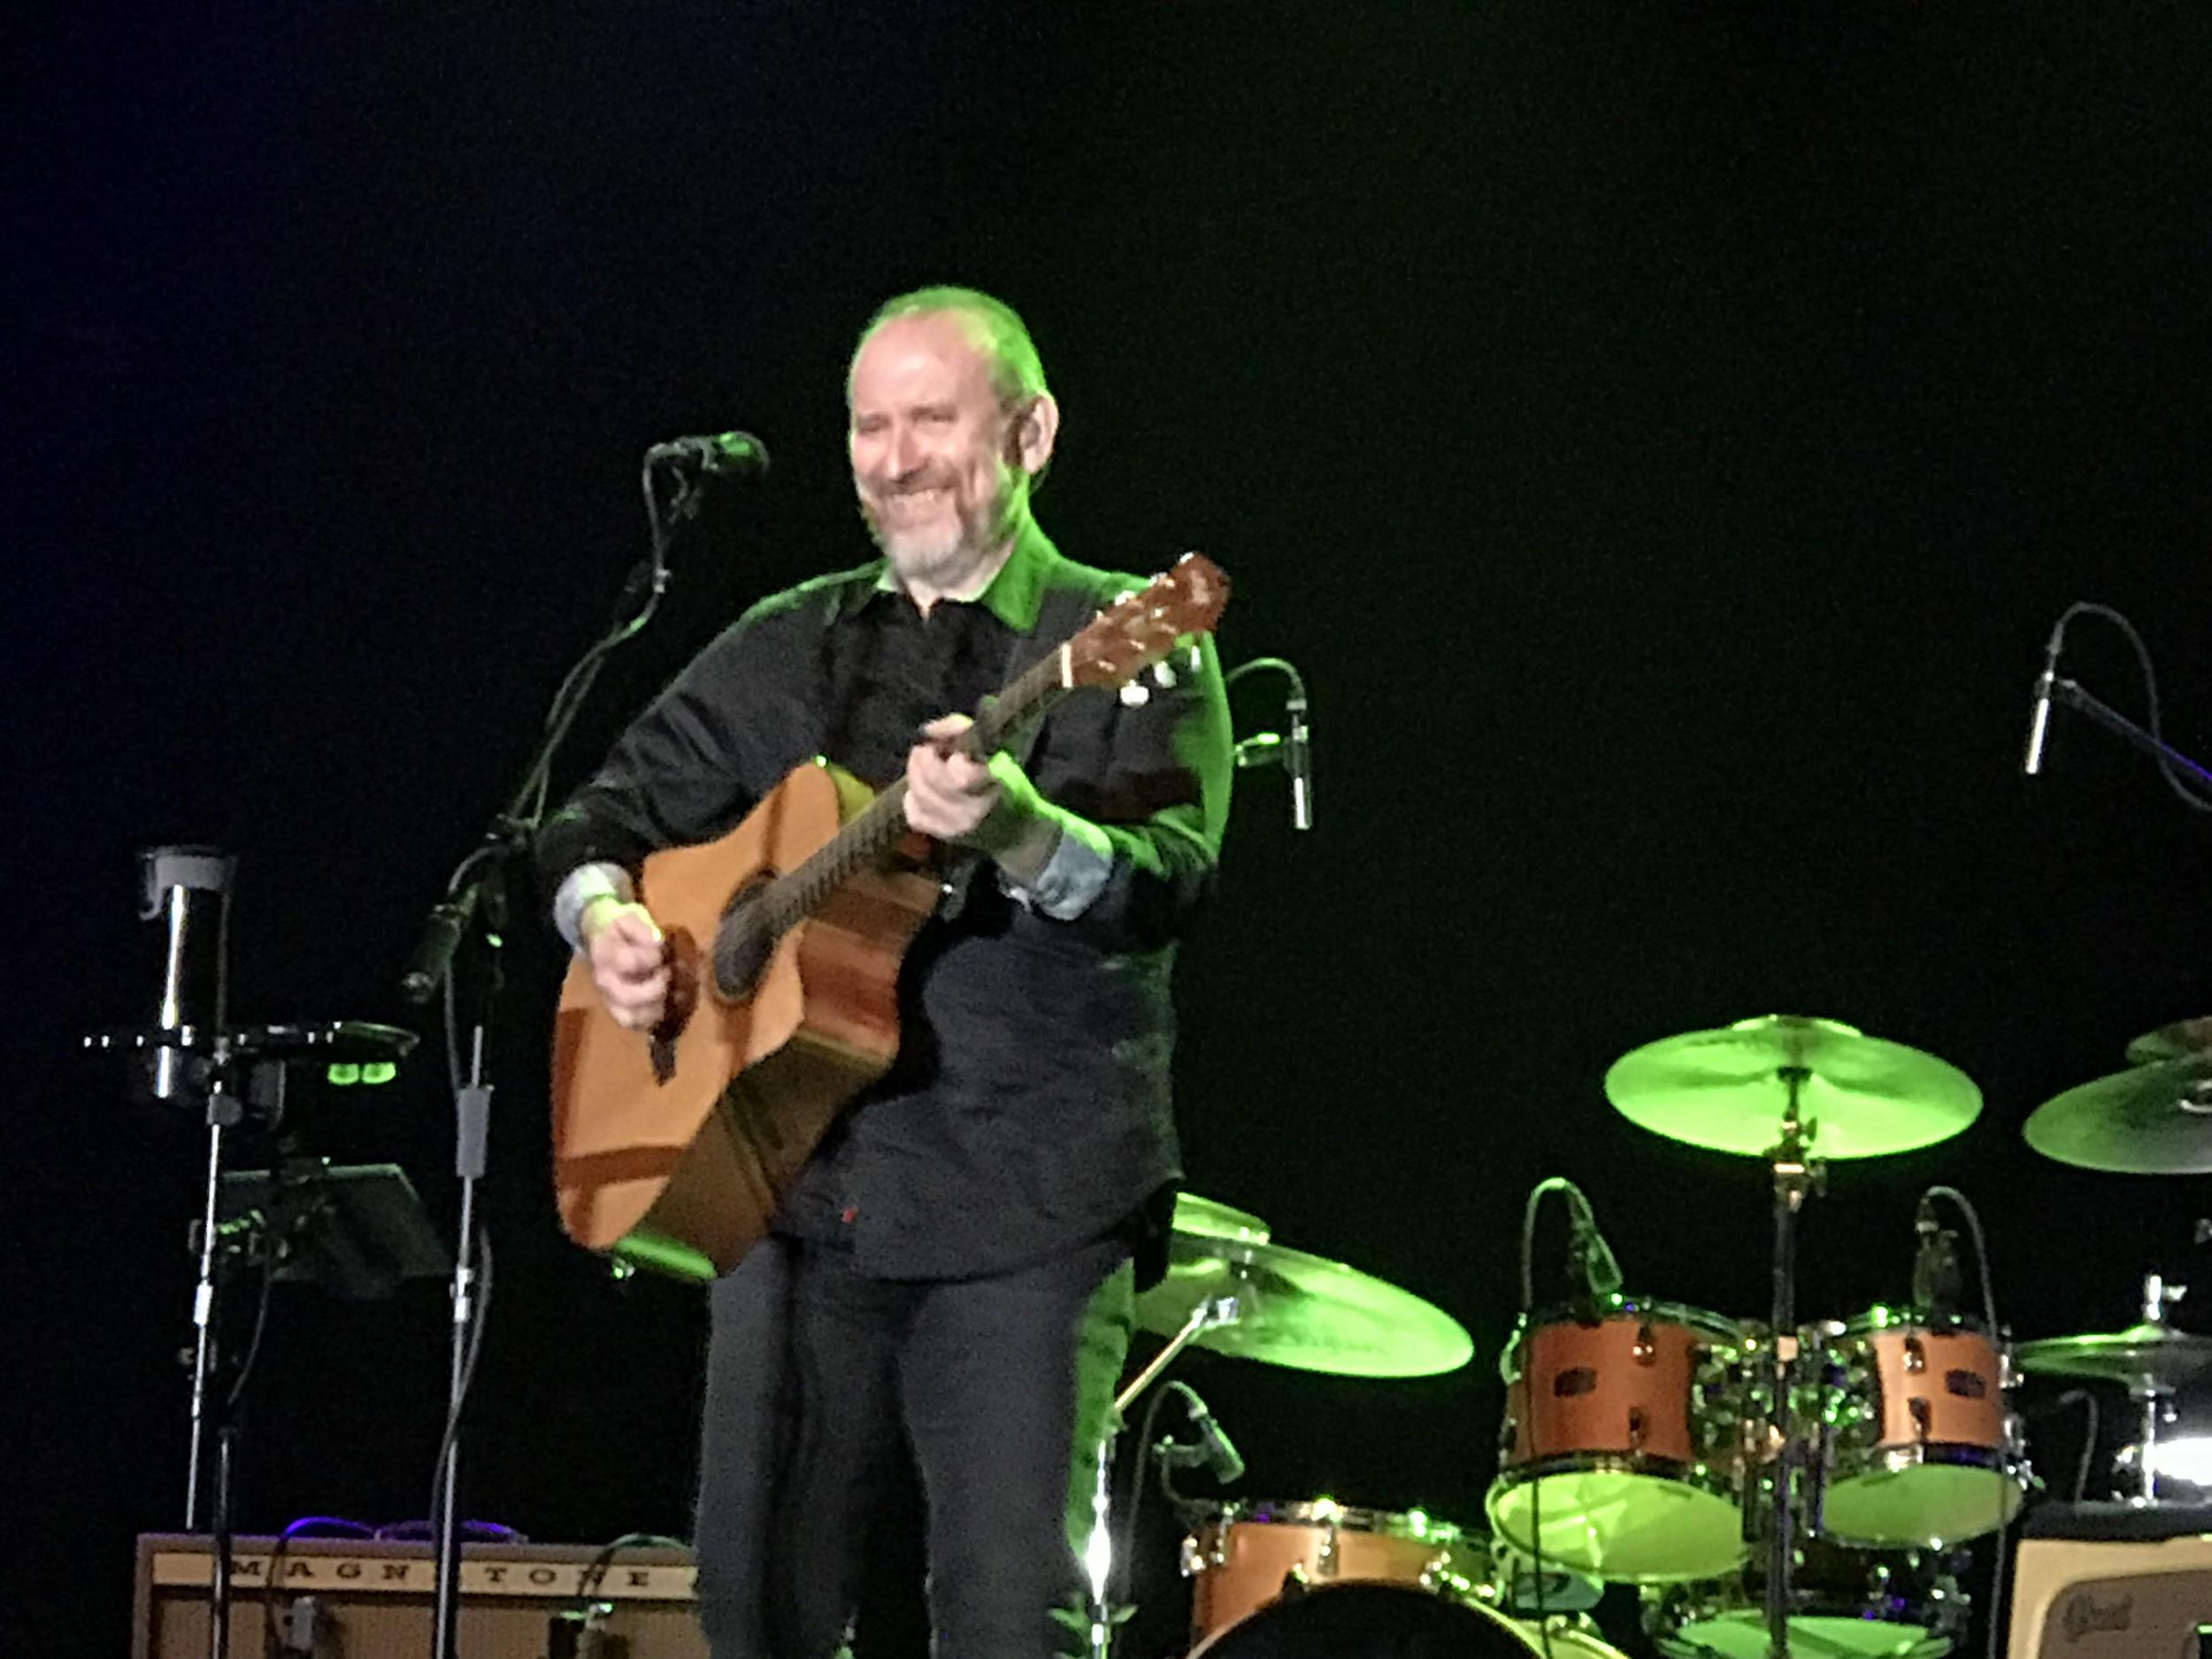 Concert review: Colin Hay displays songwriting skills at Northern Quest